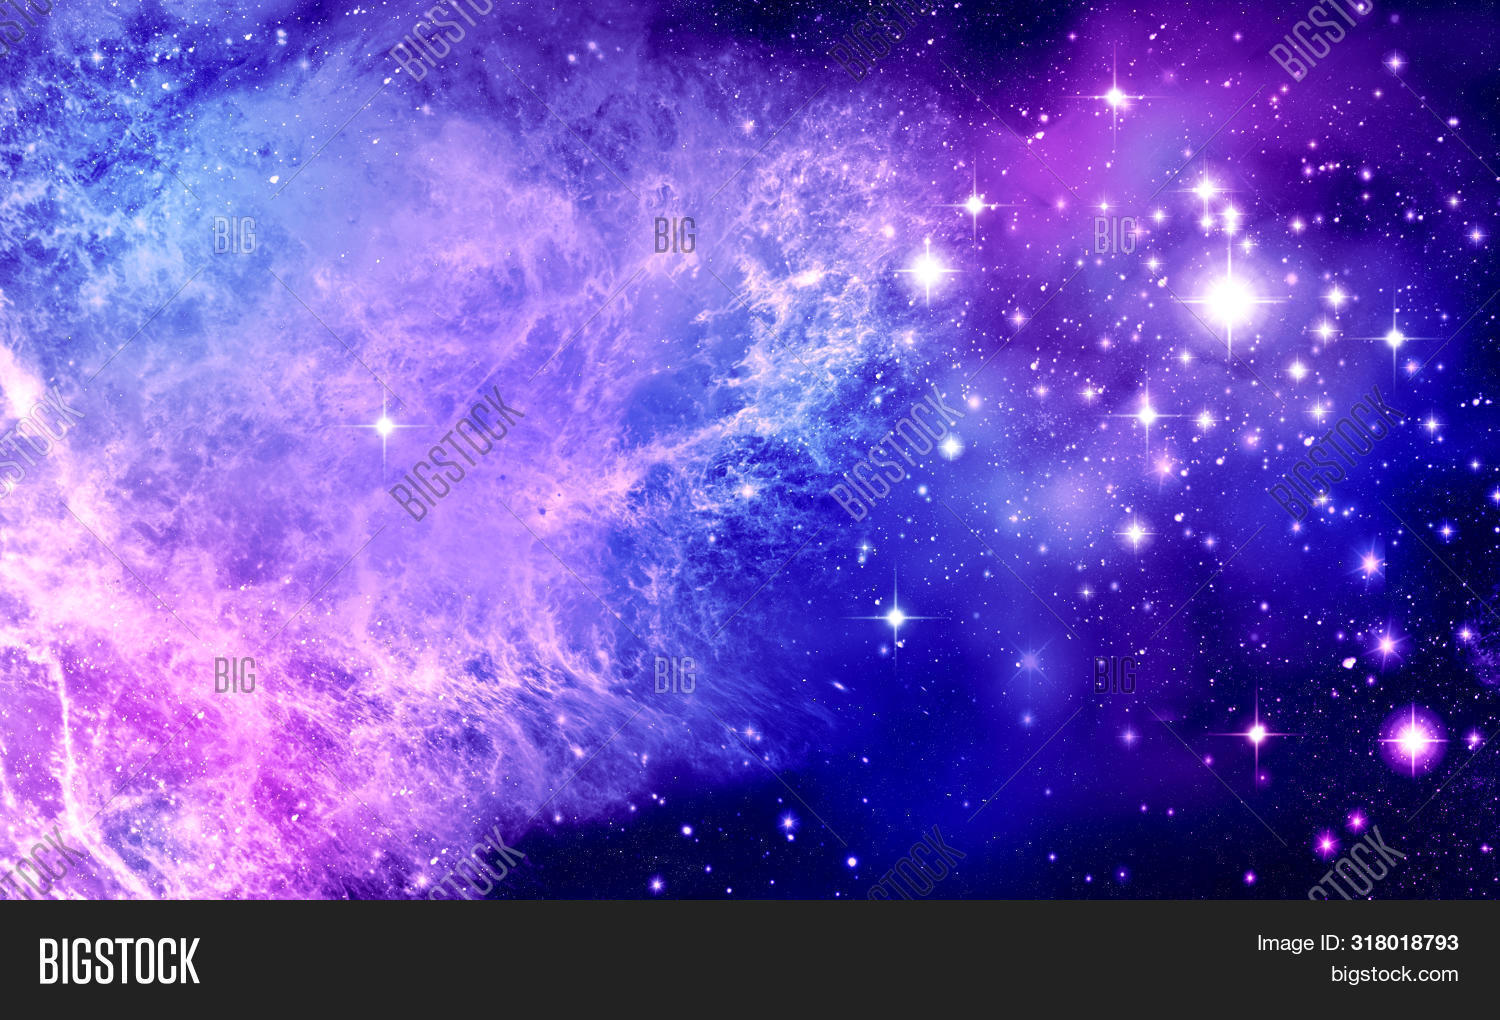 Abstract,Wallpaper,astrology,astronomy,background,black,blaze,blue,bright,constellation,creation,dark,fantasy,galaxy,illustration,light,nebula,night,of,outer,pink,purple,science,set,sky,space,star,texture,universe